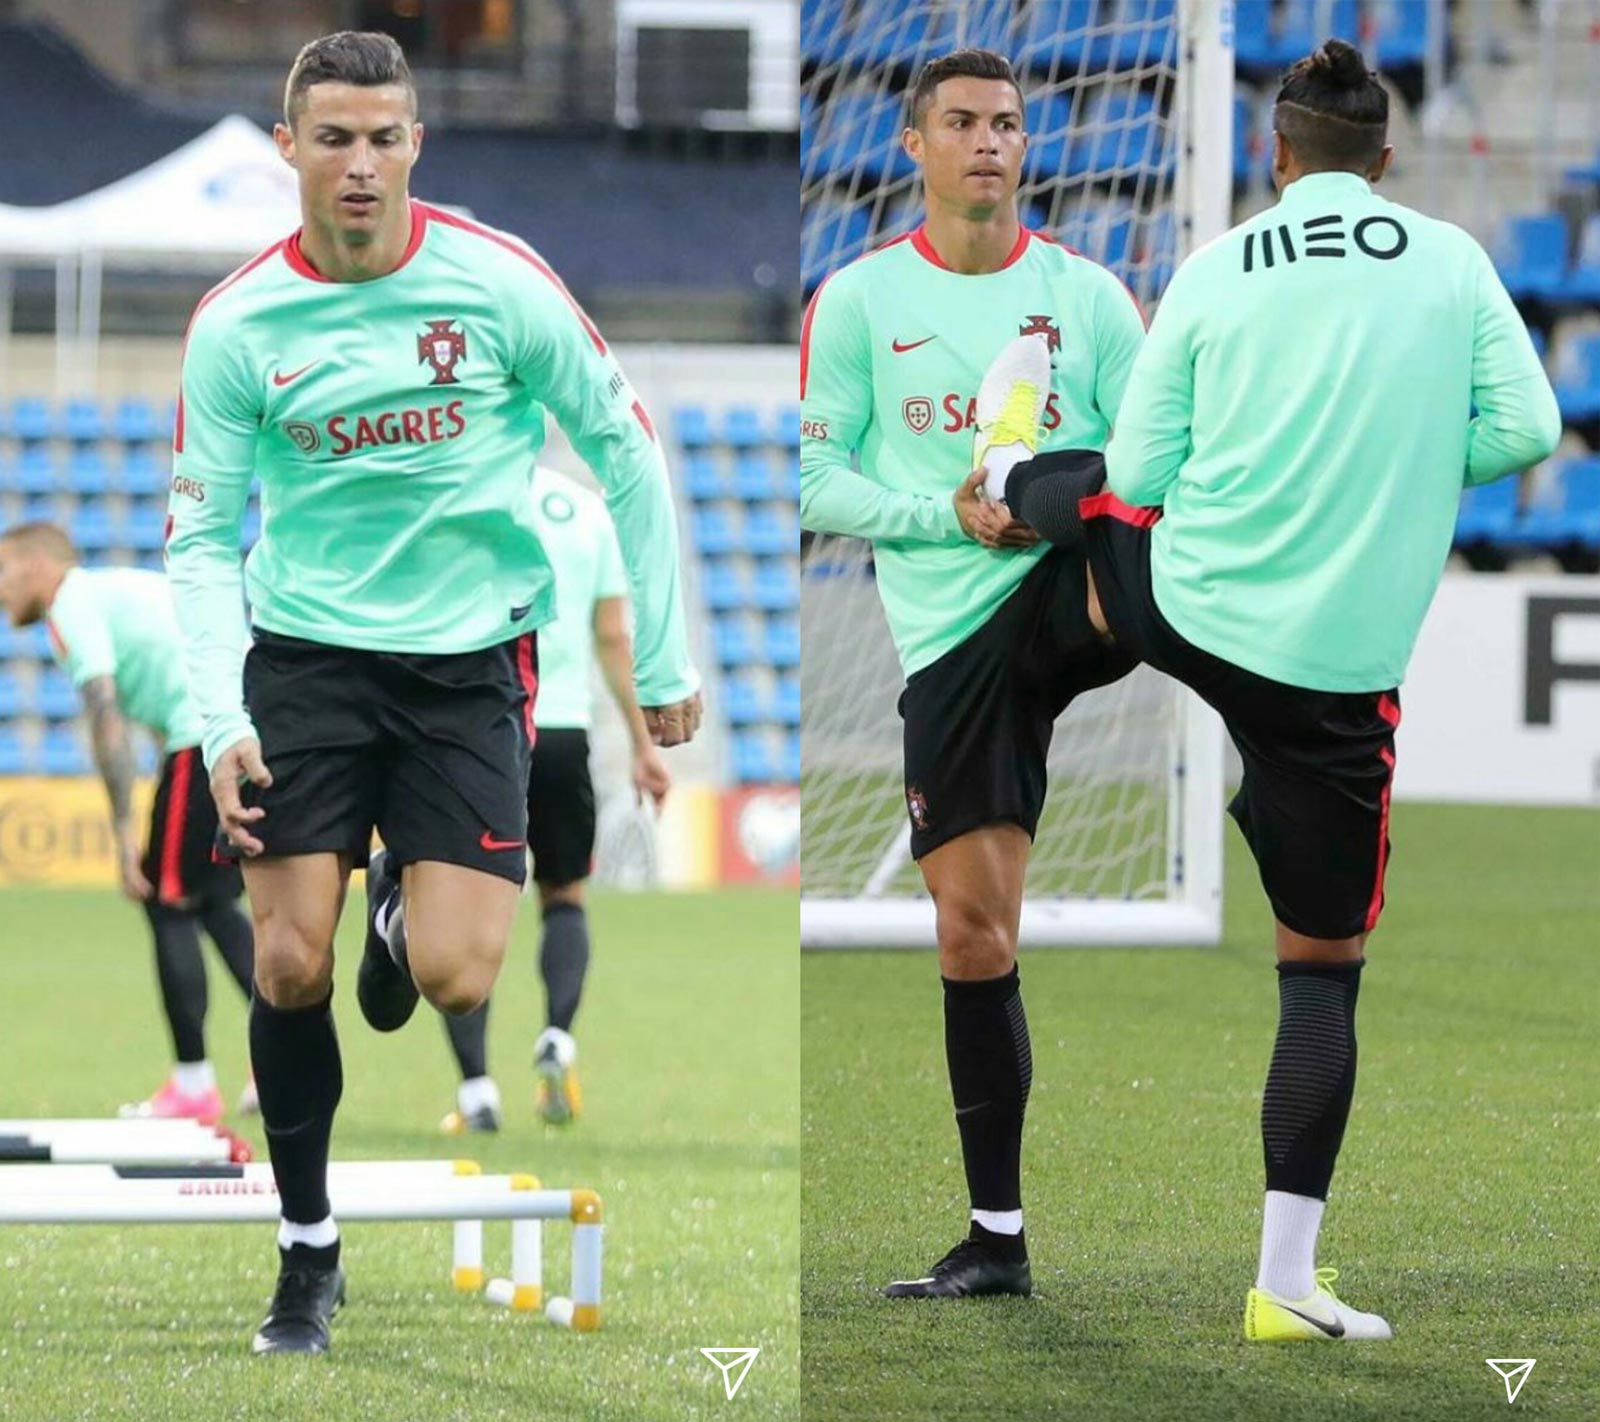 ... Nike Mercurial Superfly VI 2018 World Cup boots worn by Cristiano  Ronaldo in training in early October 2017, reavealing that the upper  structure is ...